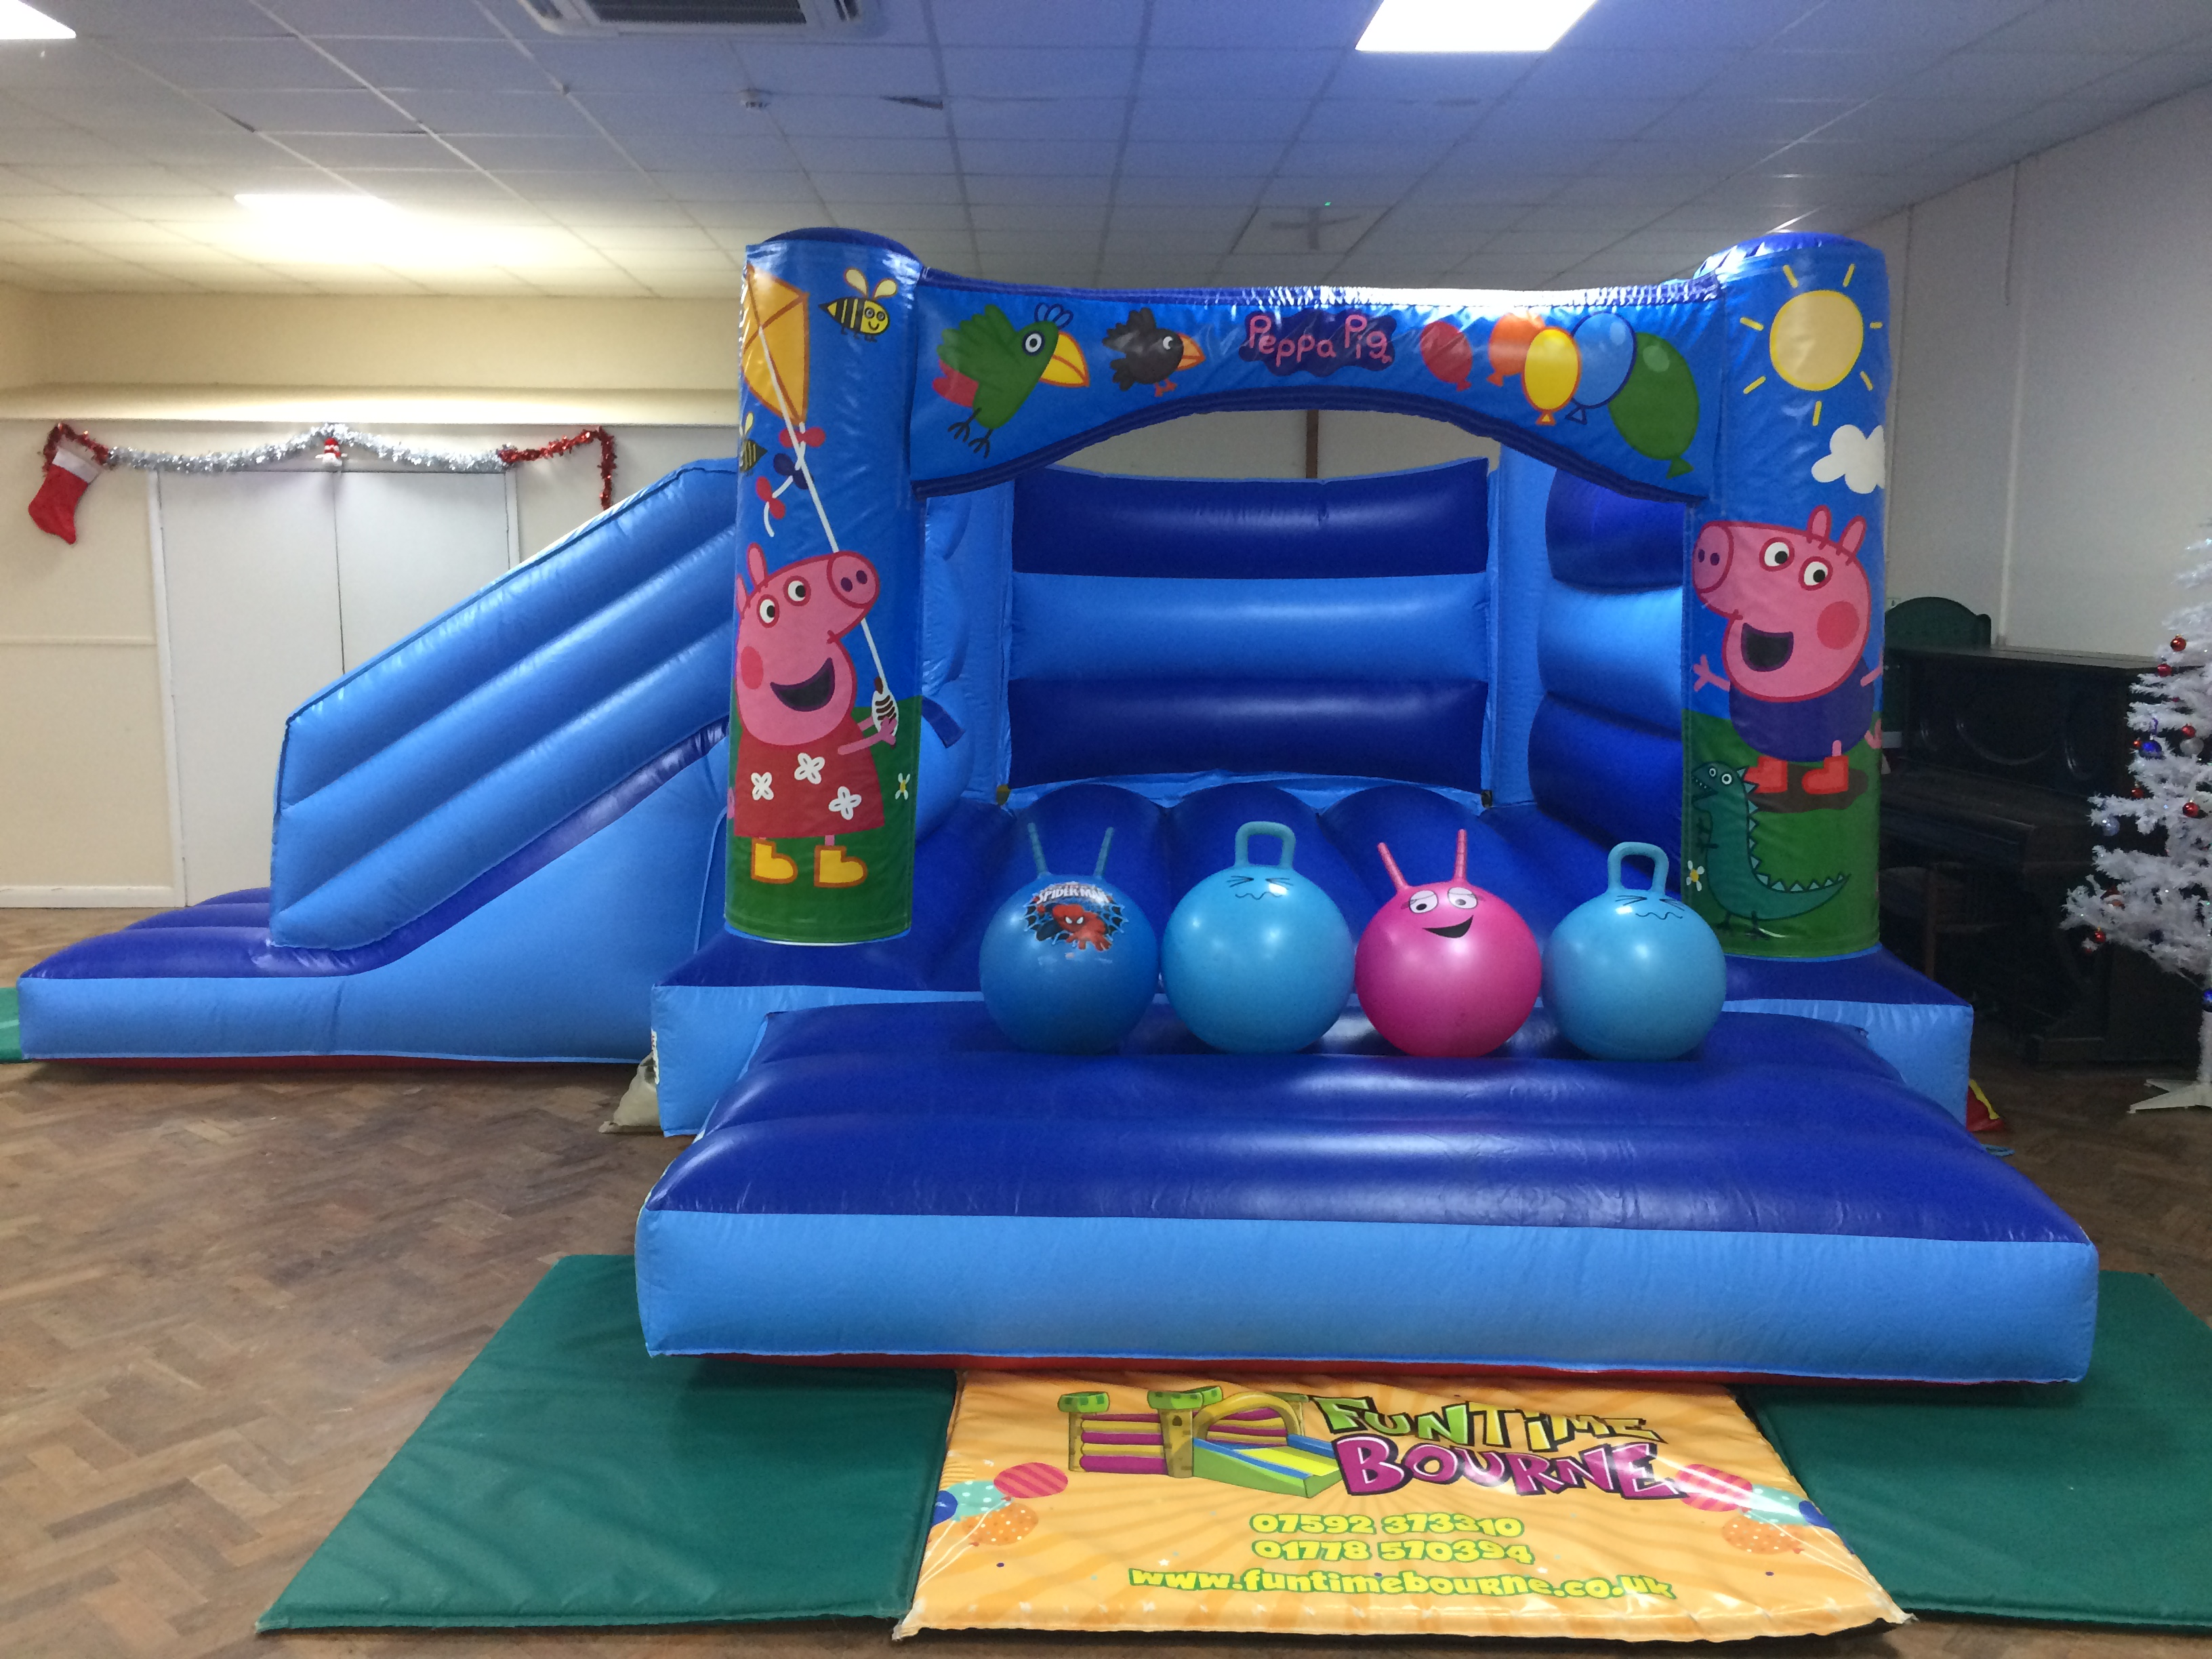 Blue Peppa Combo Bounce and Slide Bouncy Castle